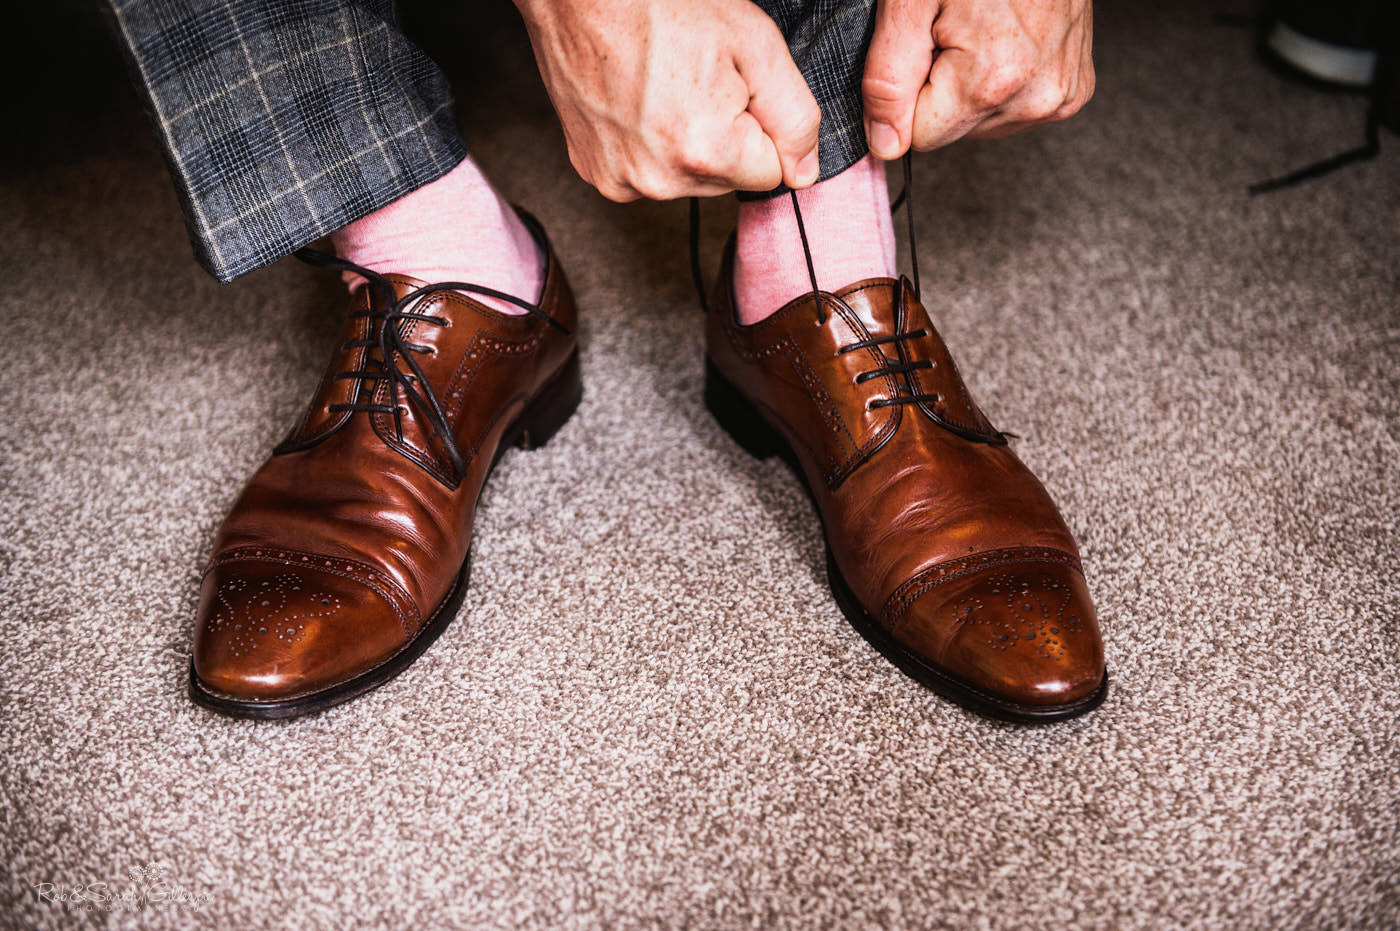 Groom ties shoelaces as he prepares for wedding